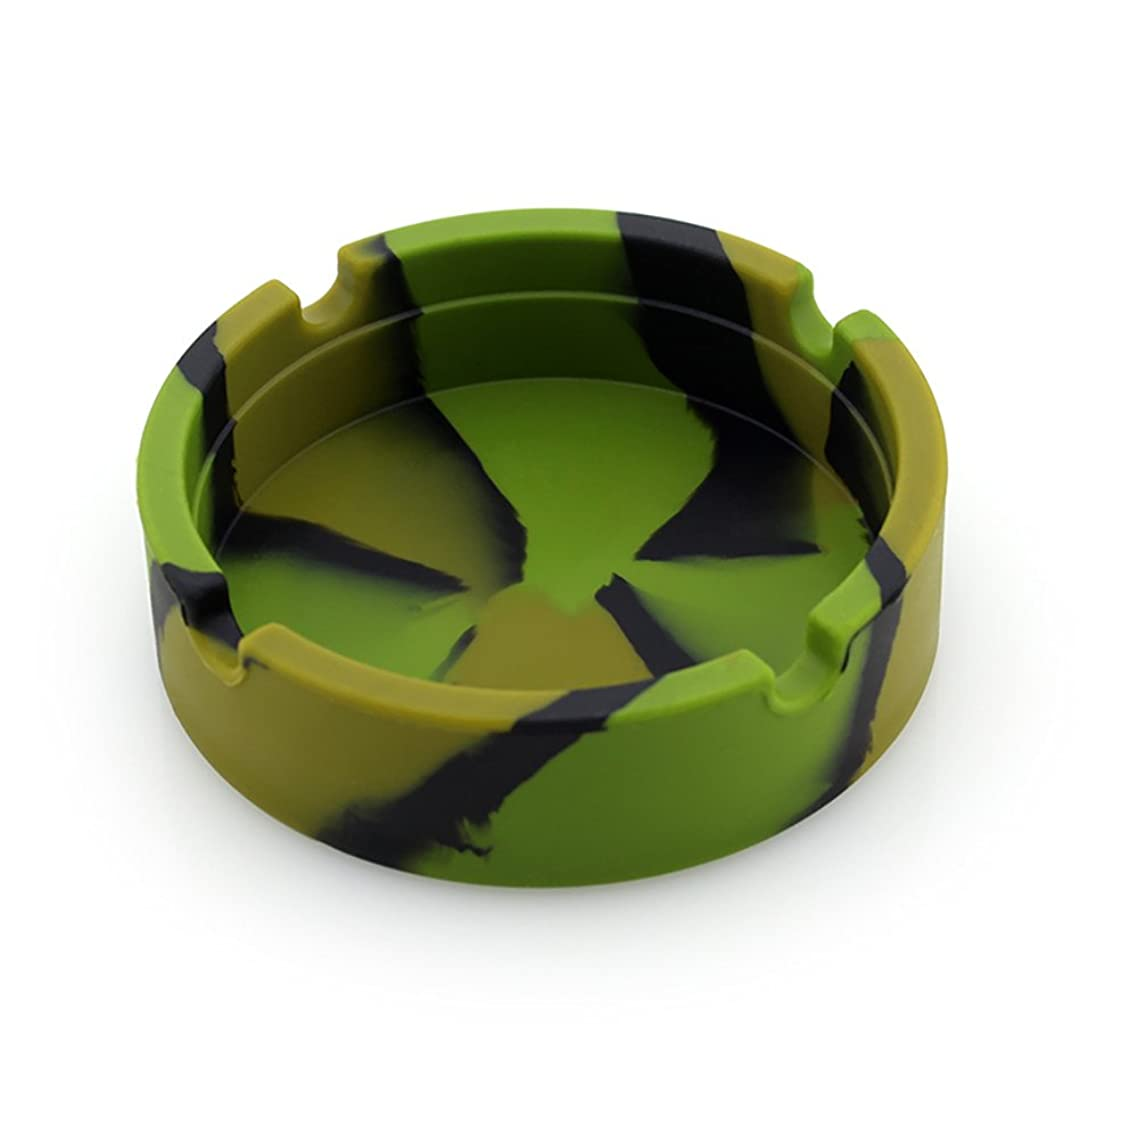 Gotian Silicone Ashtray Premium Silicone Rubber High Temperature Heat Resistant Round Design Ashtray Easy to Carry Bendable Unbreakable Ashtray (Camouflage)